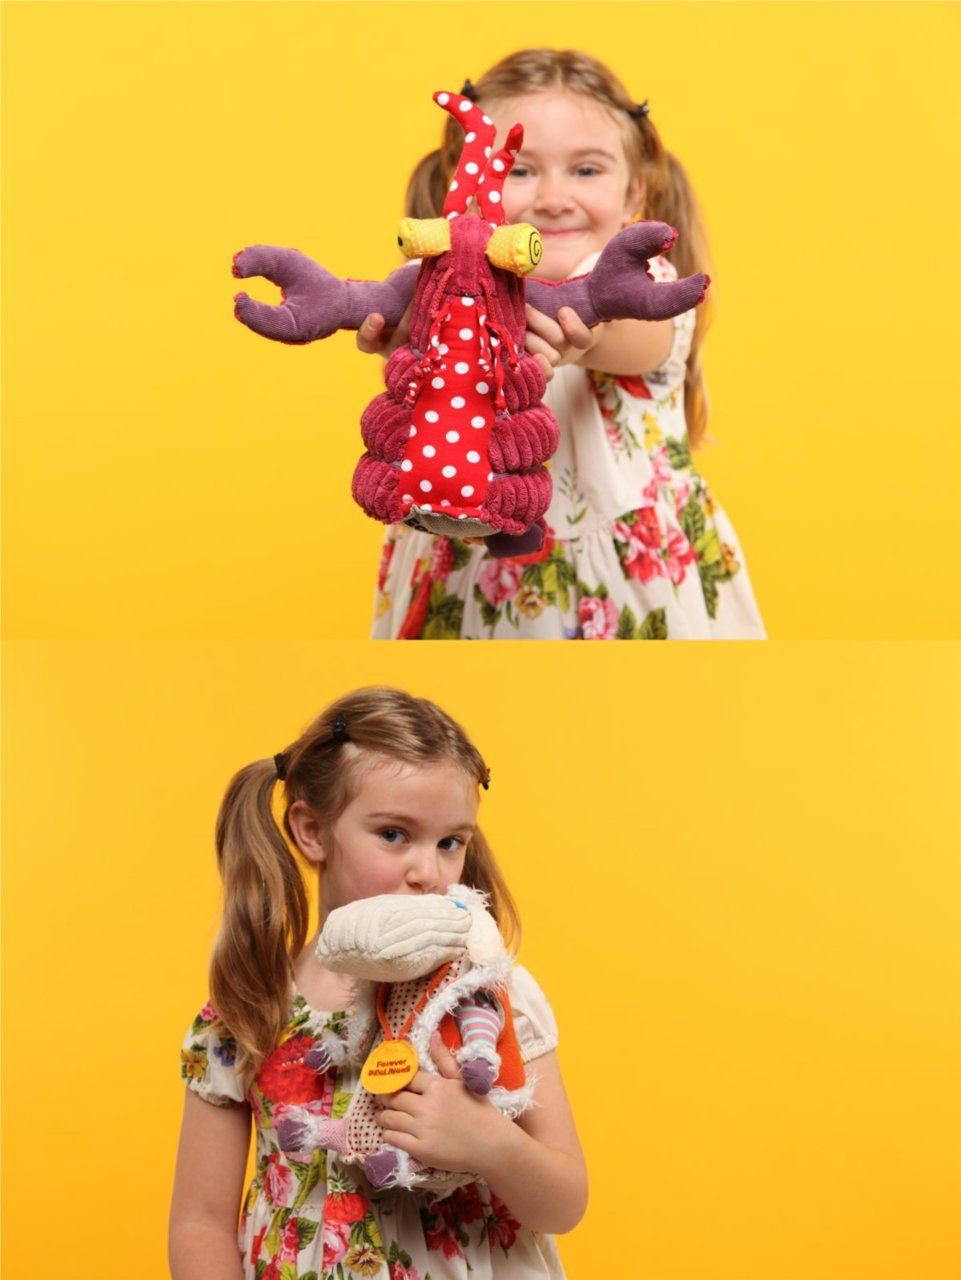 Geared For Imagination's kooky plush characters are too much fun for kids on set at zulily!